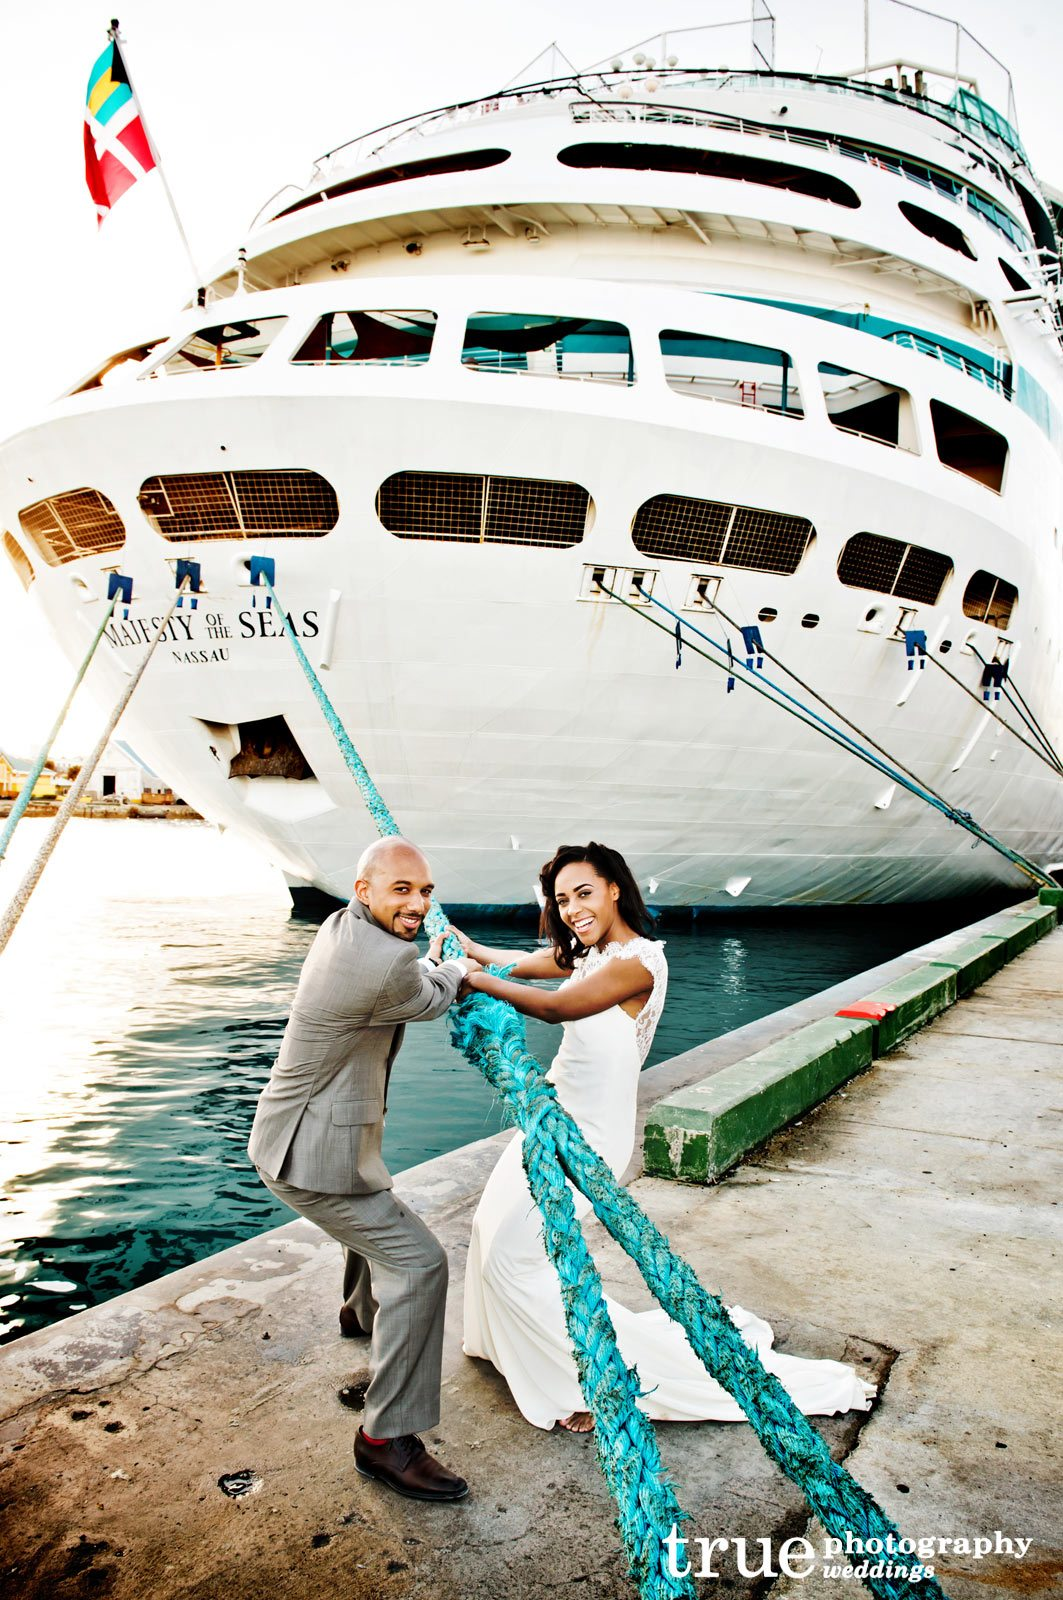 A Destination Wedding On A Cruise To The Bahamas